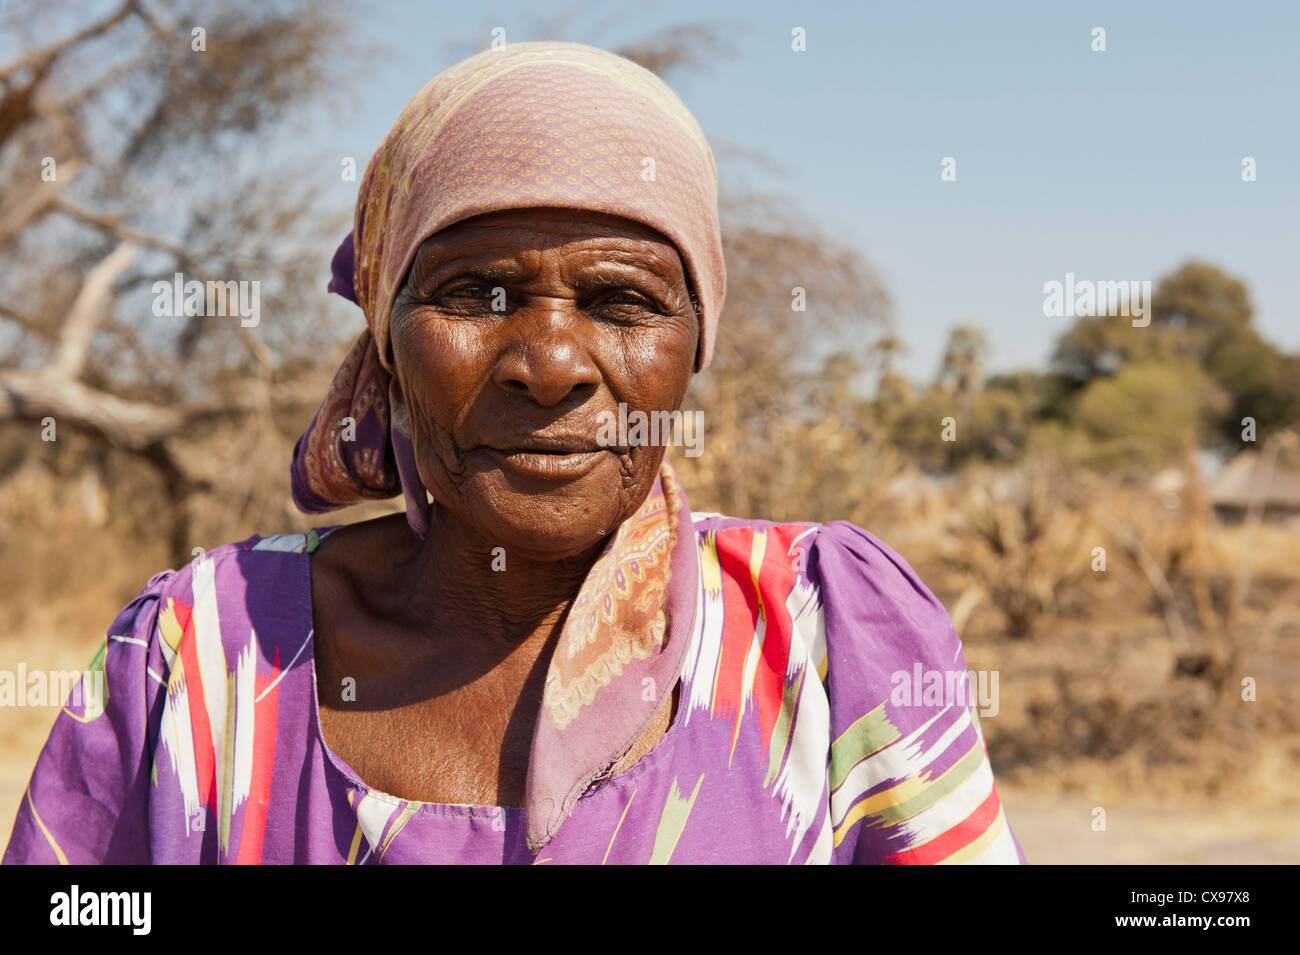 Older African woman in traditional dress in rural Botswana - Stock Image